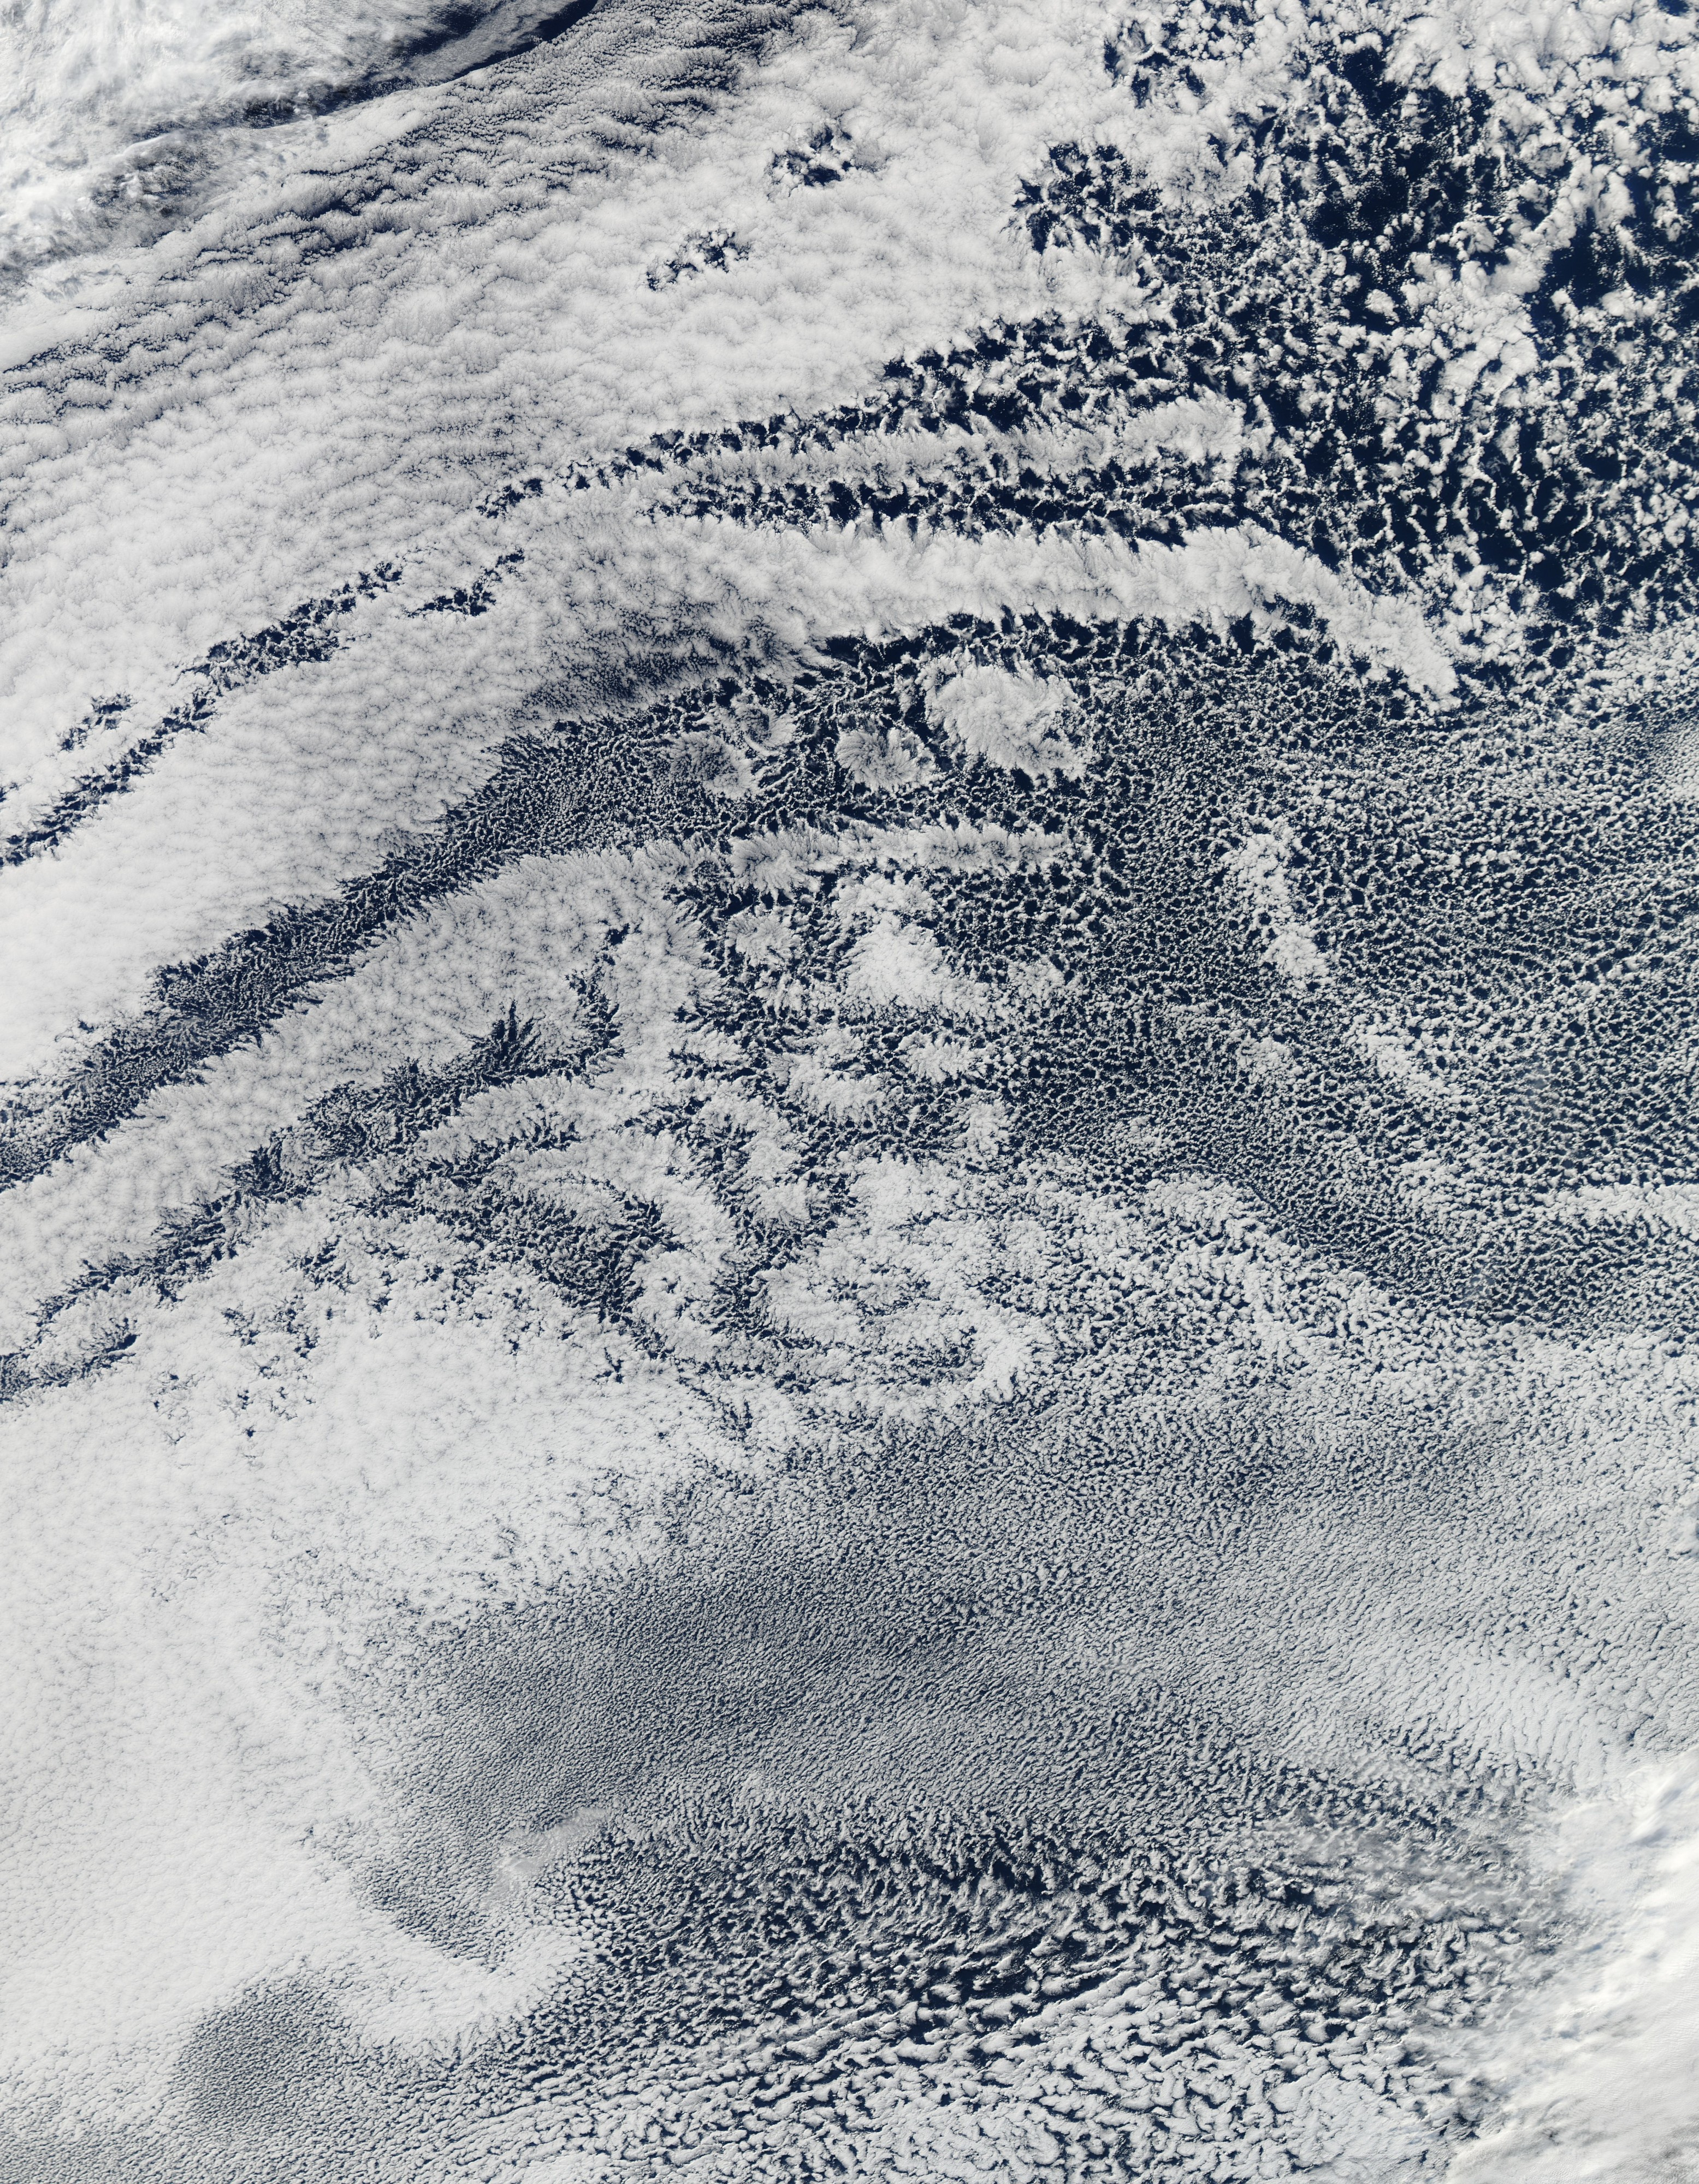 Open- and Closed-Cell Clouds over the Pacific Ocean